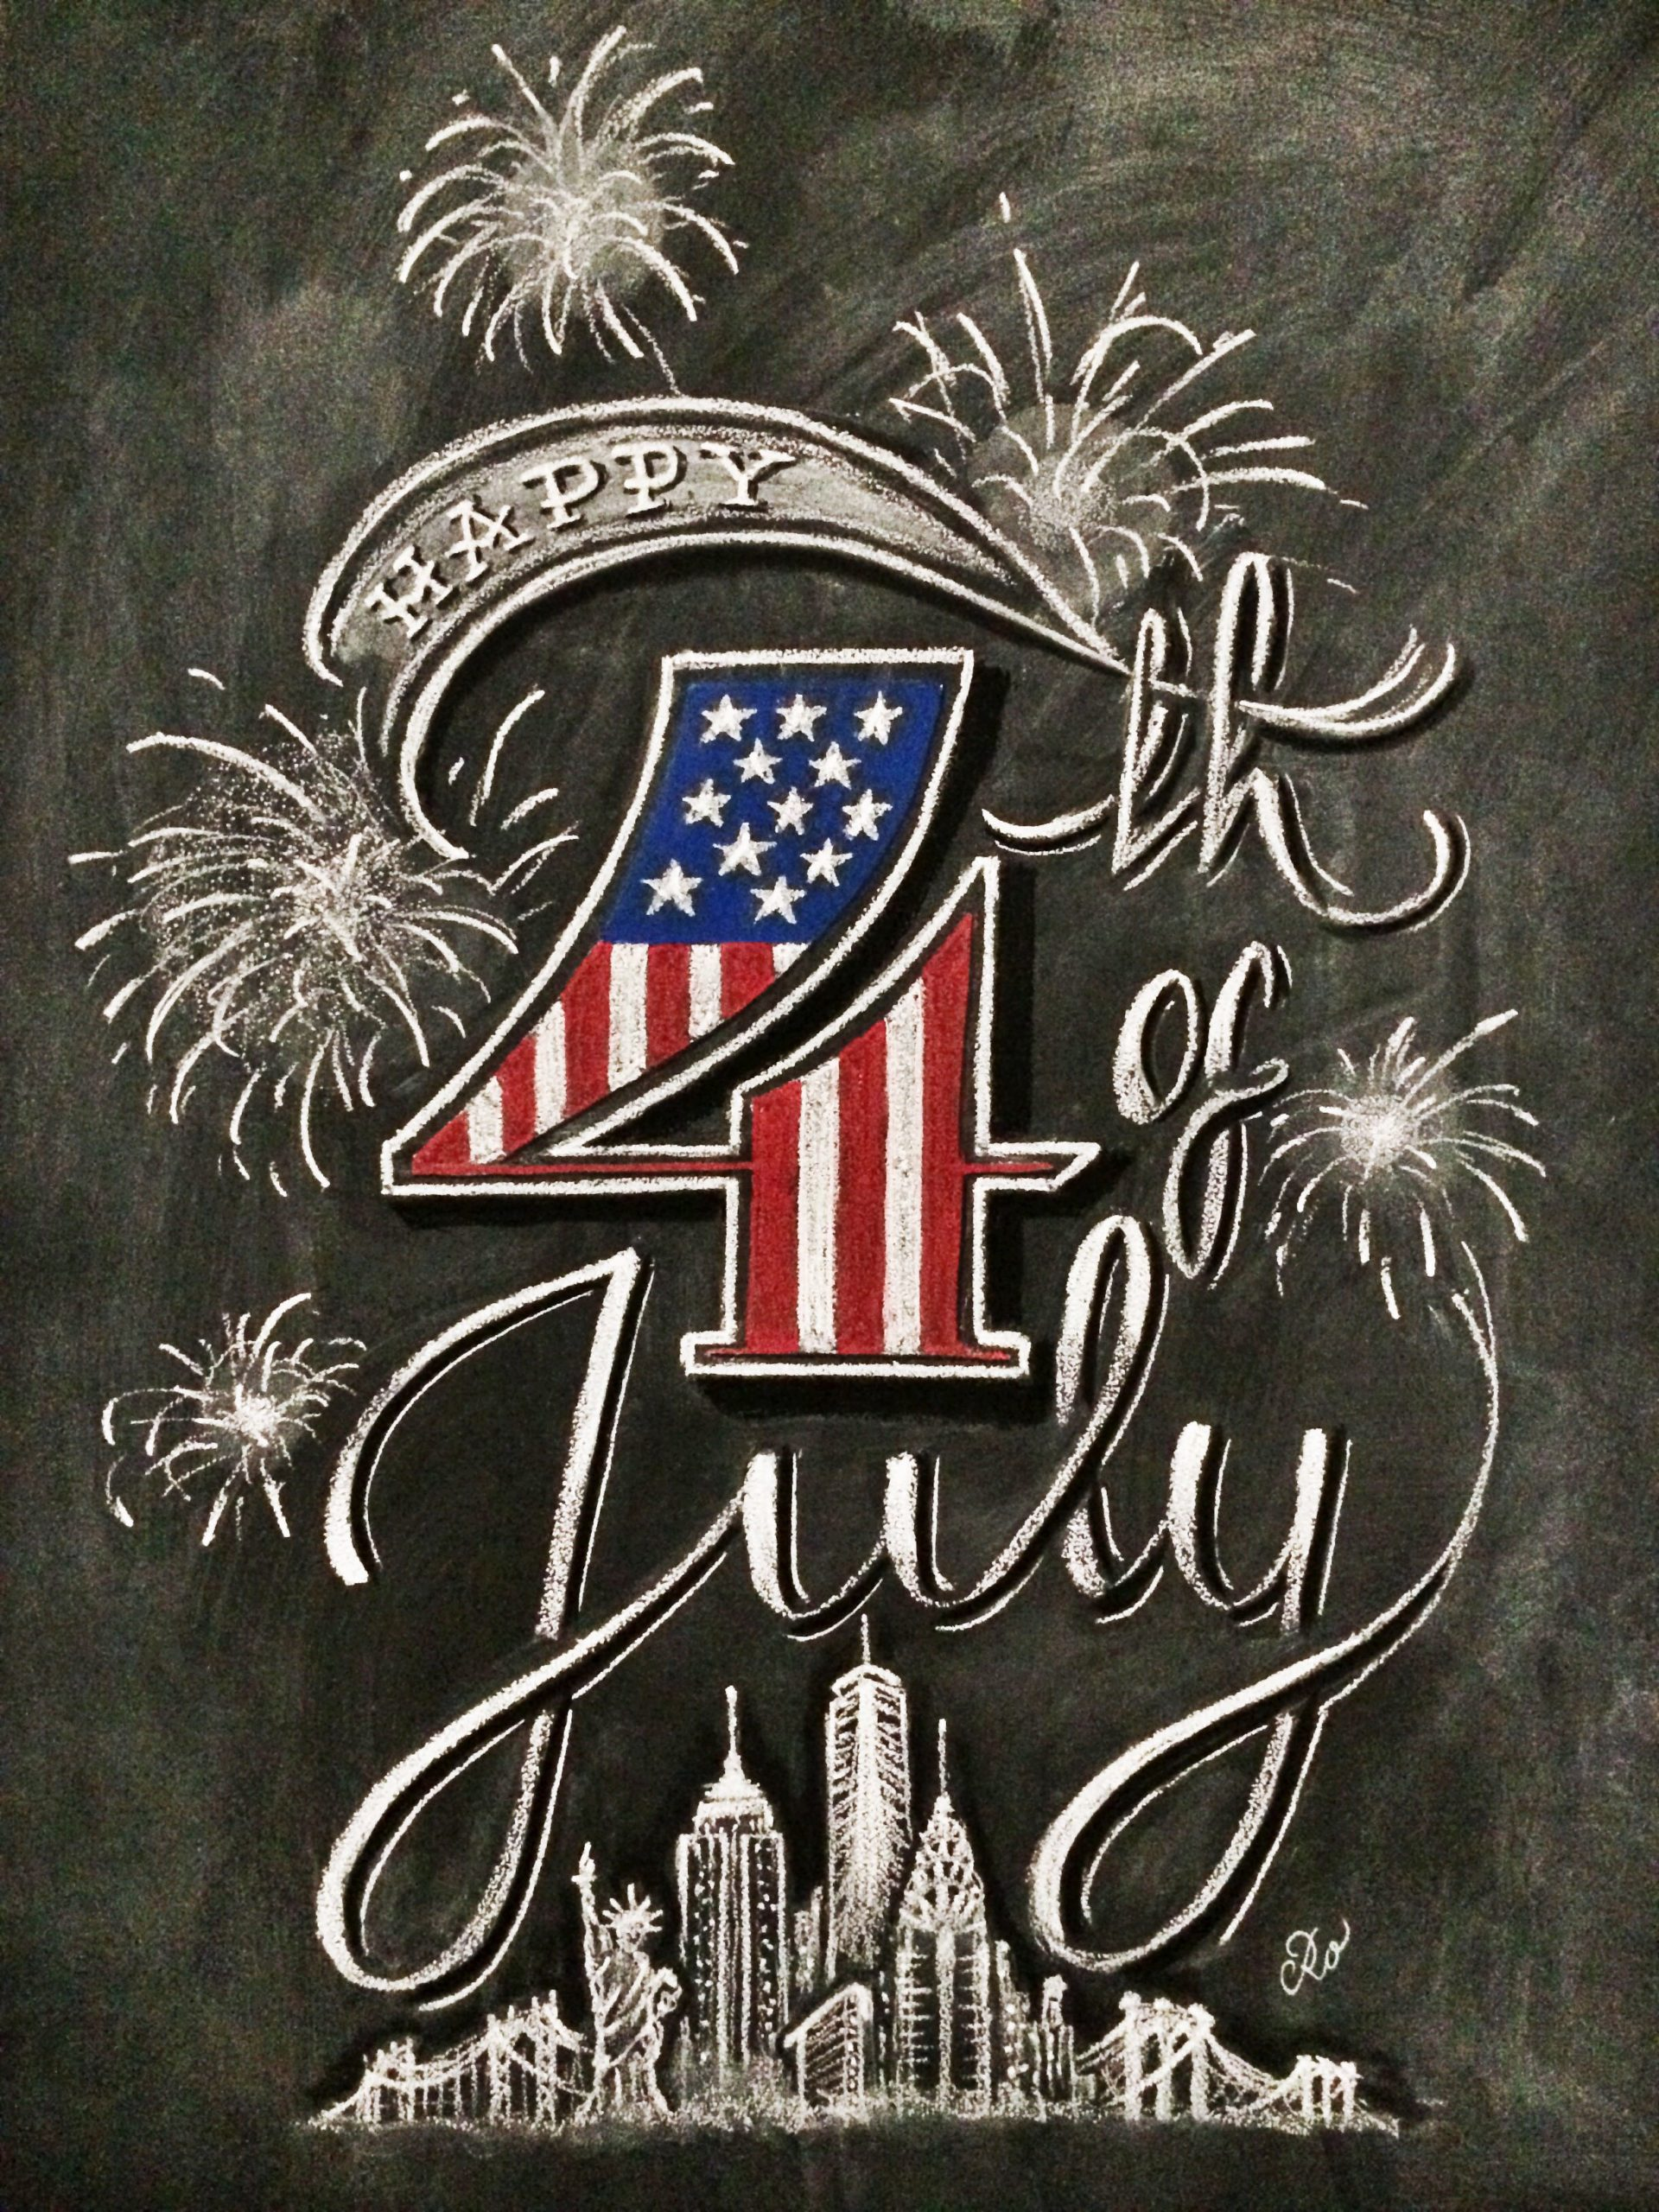 4th of July images free download